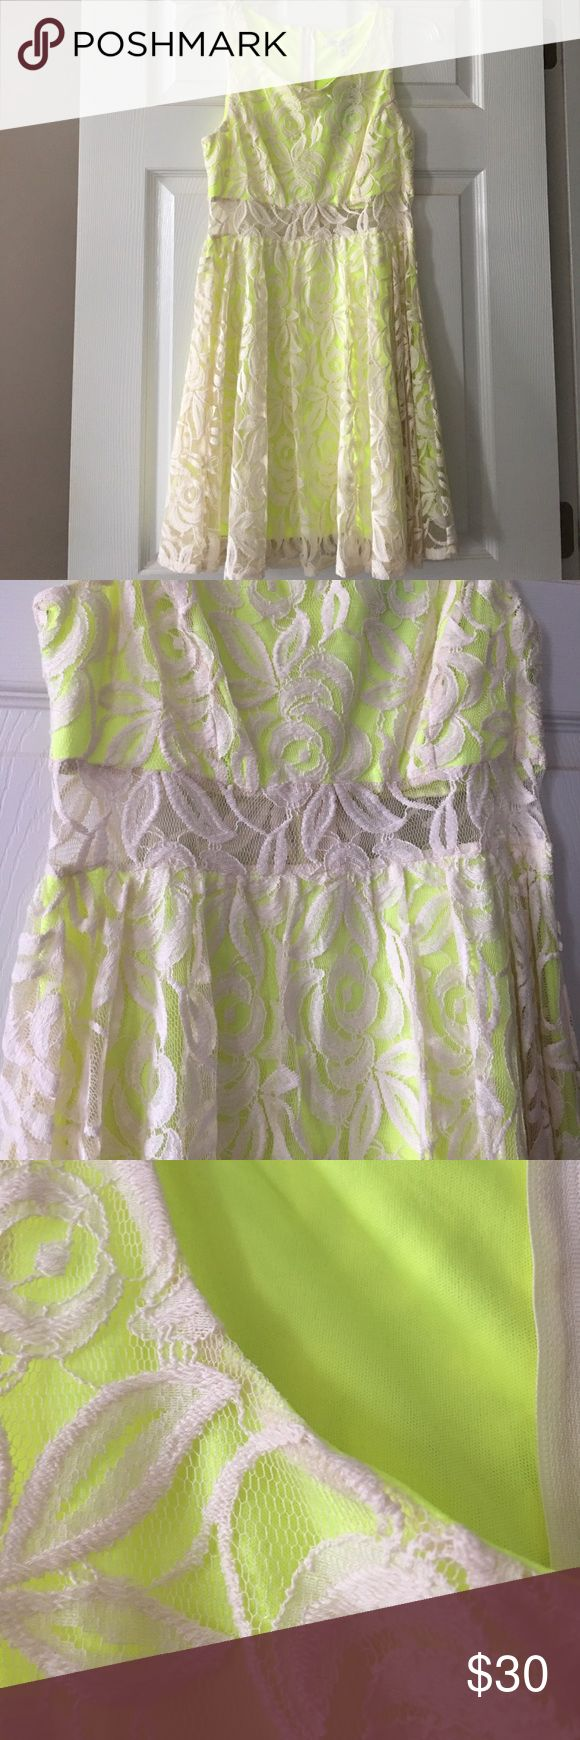 Neon & Lace Dress Super adorable neon green dress with creme lace overlay and a sheer mid section! Brand new still has the tags attached! love, Fire Dresses